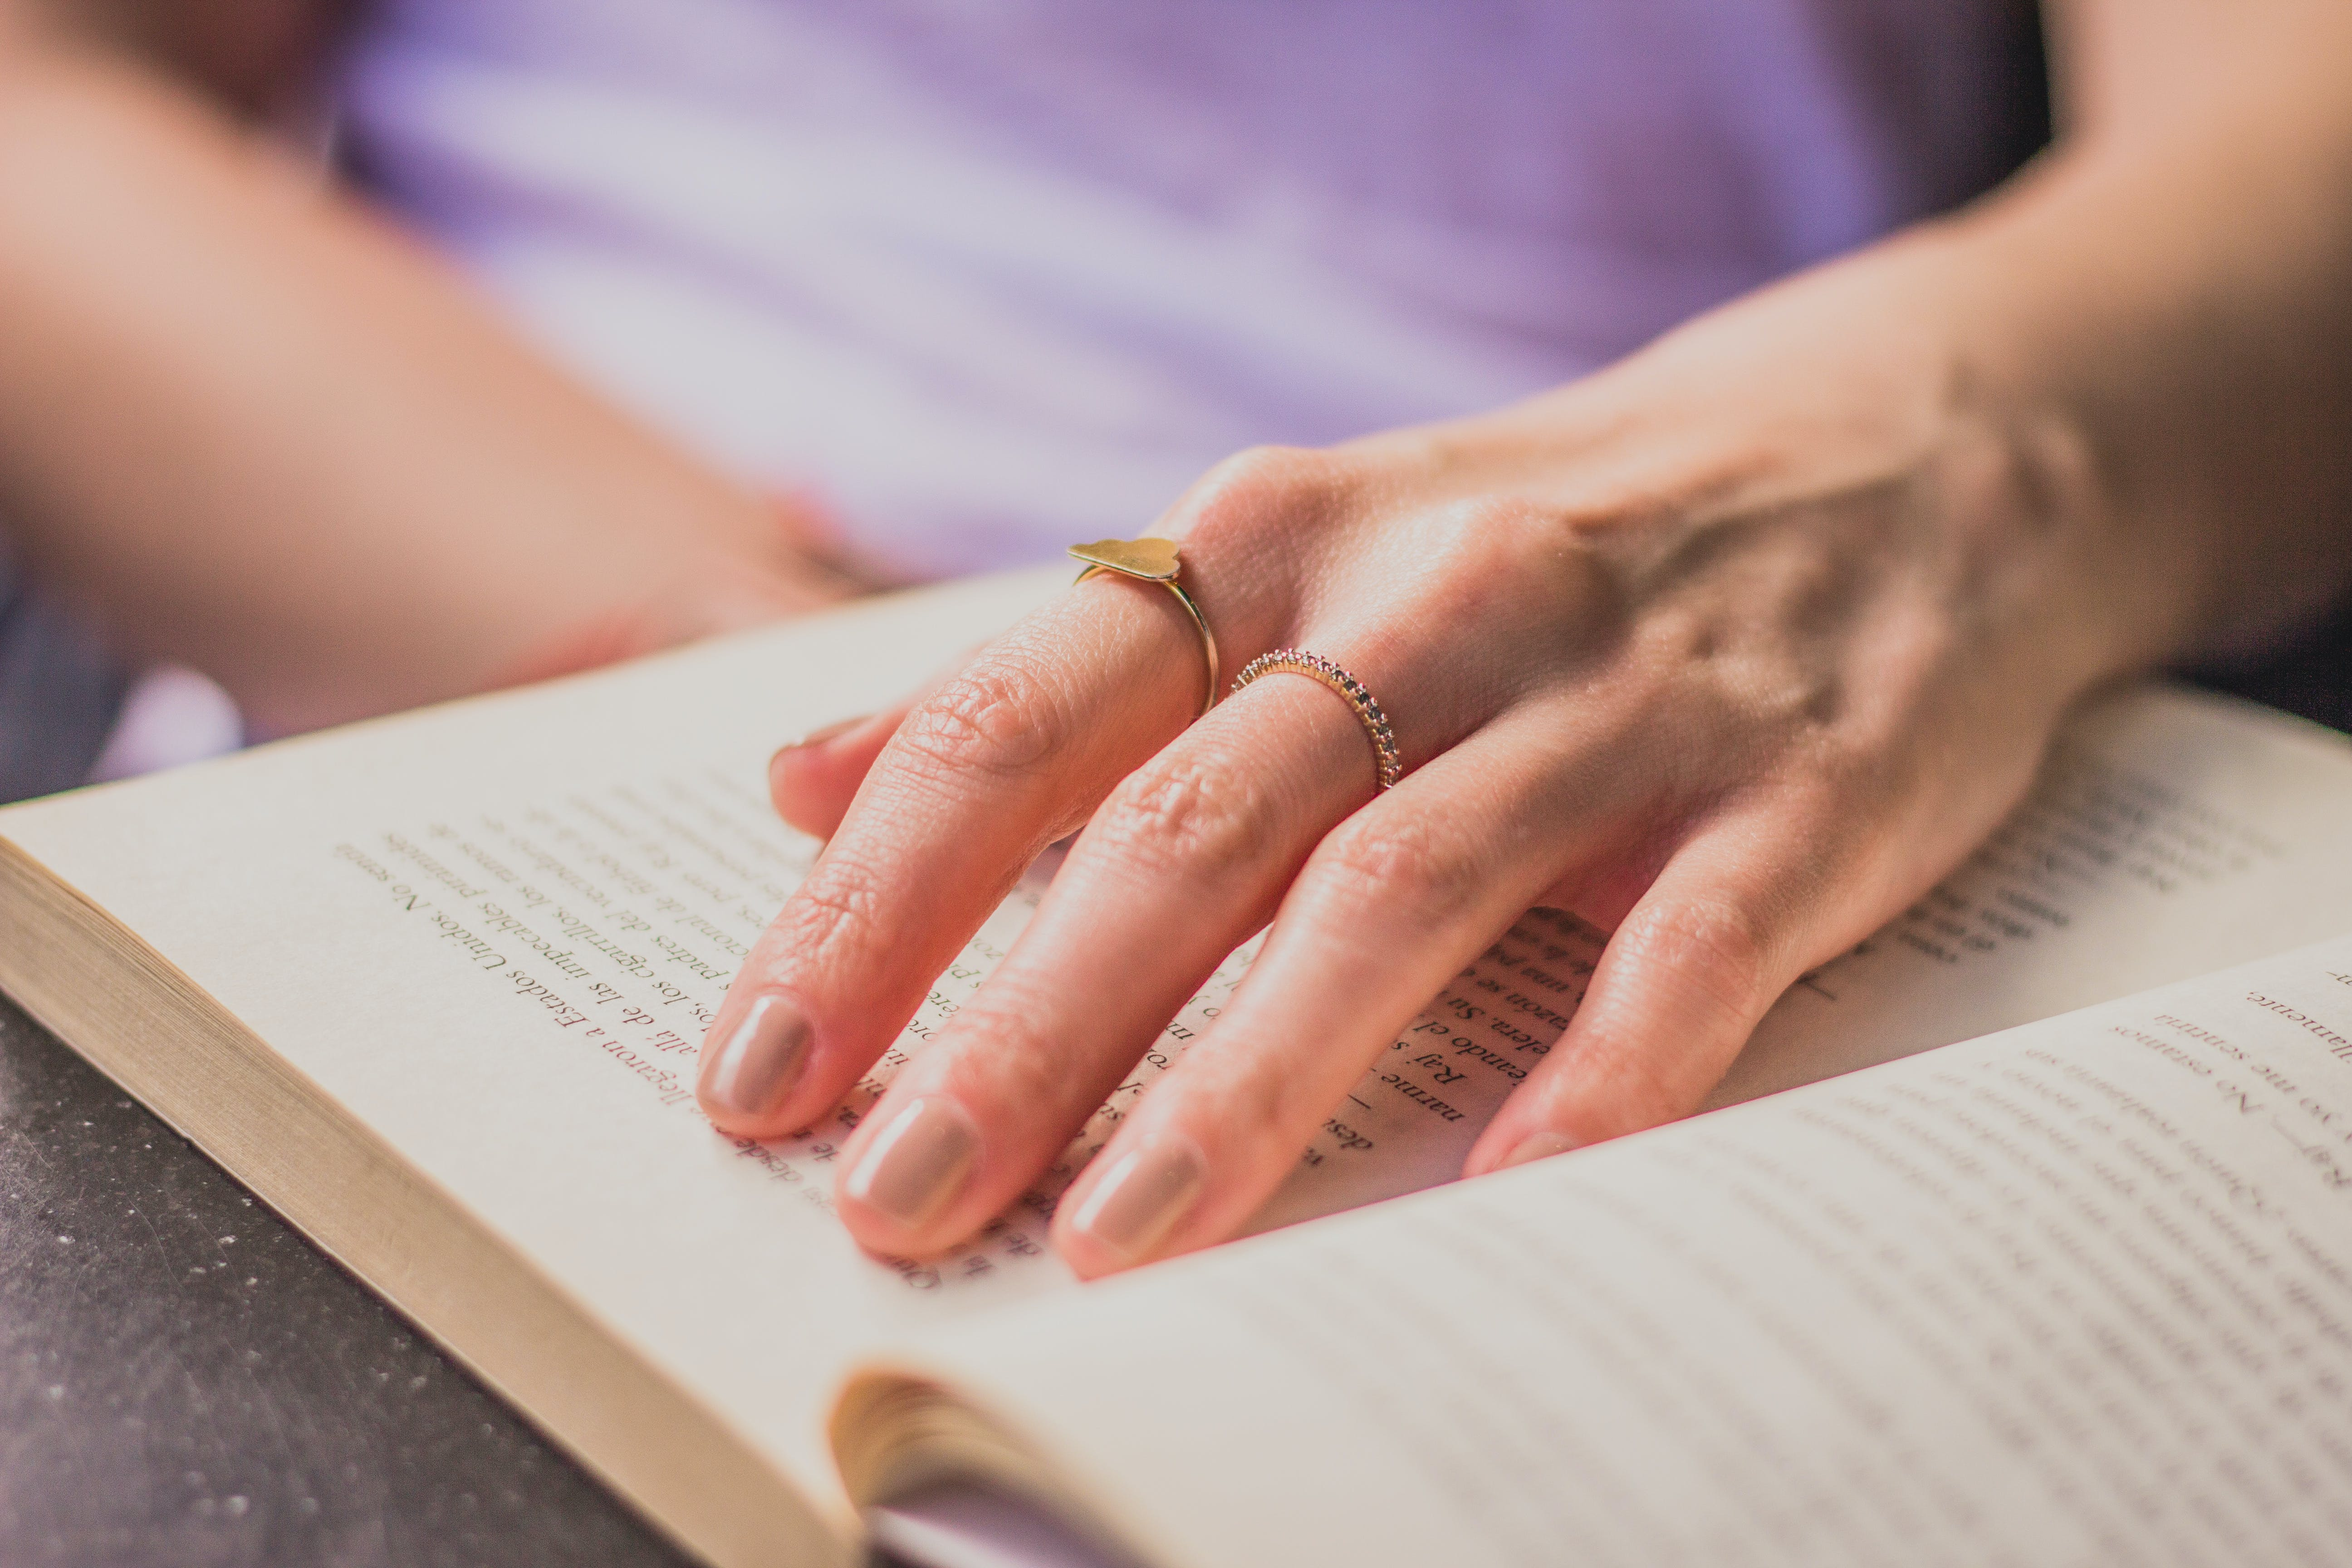 Close-up Photography Of Person Holding Opened Book